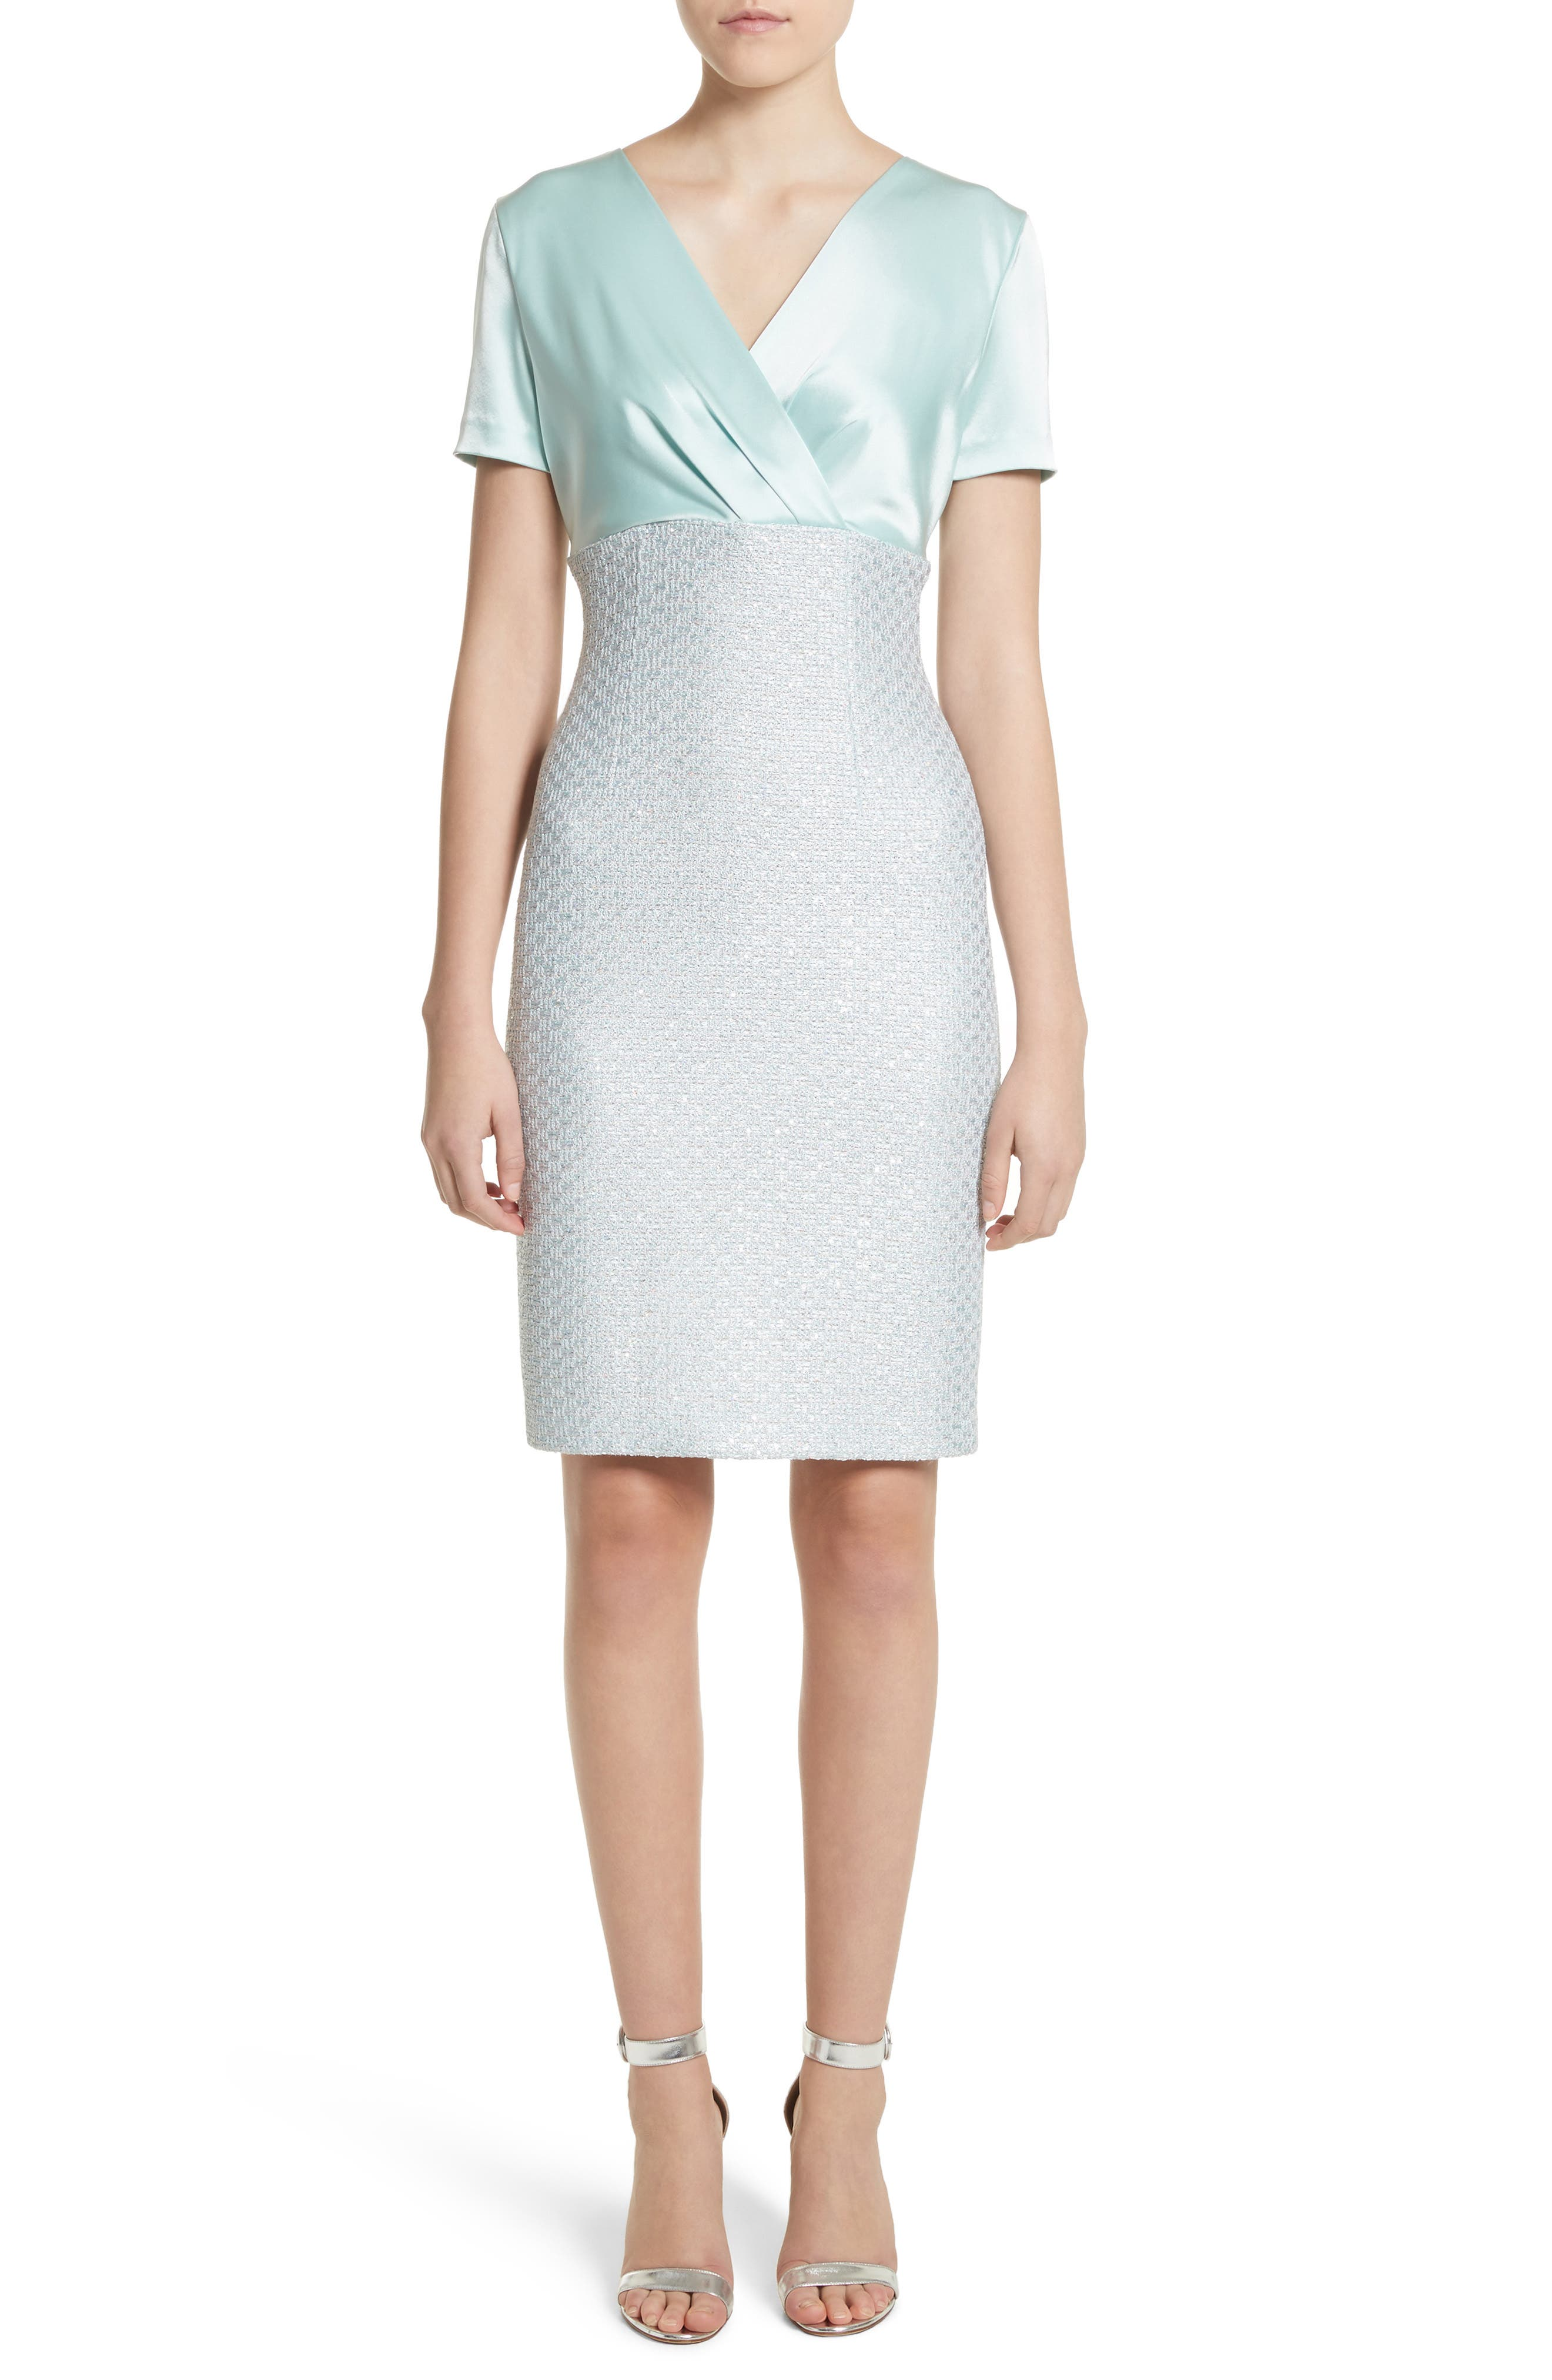 Hansh Satin & Knit Sheath Dress,                         Main,                         color, Mint